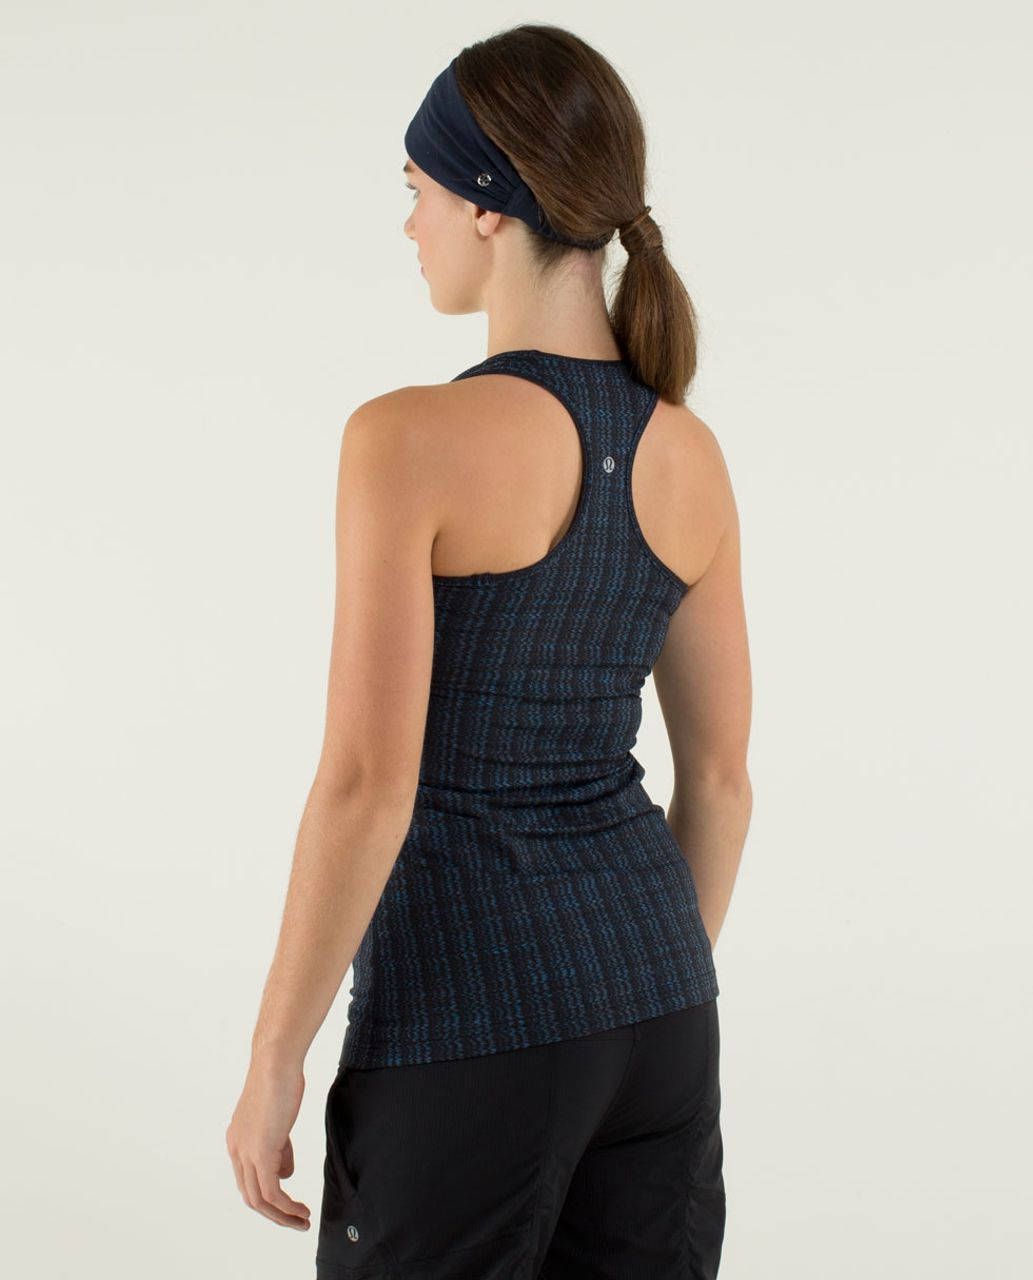 Lululemon Cool Racerback - Ziggy Wee October Inkwell